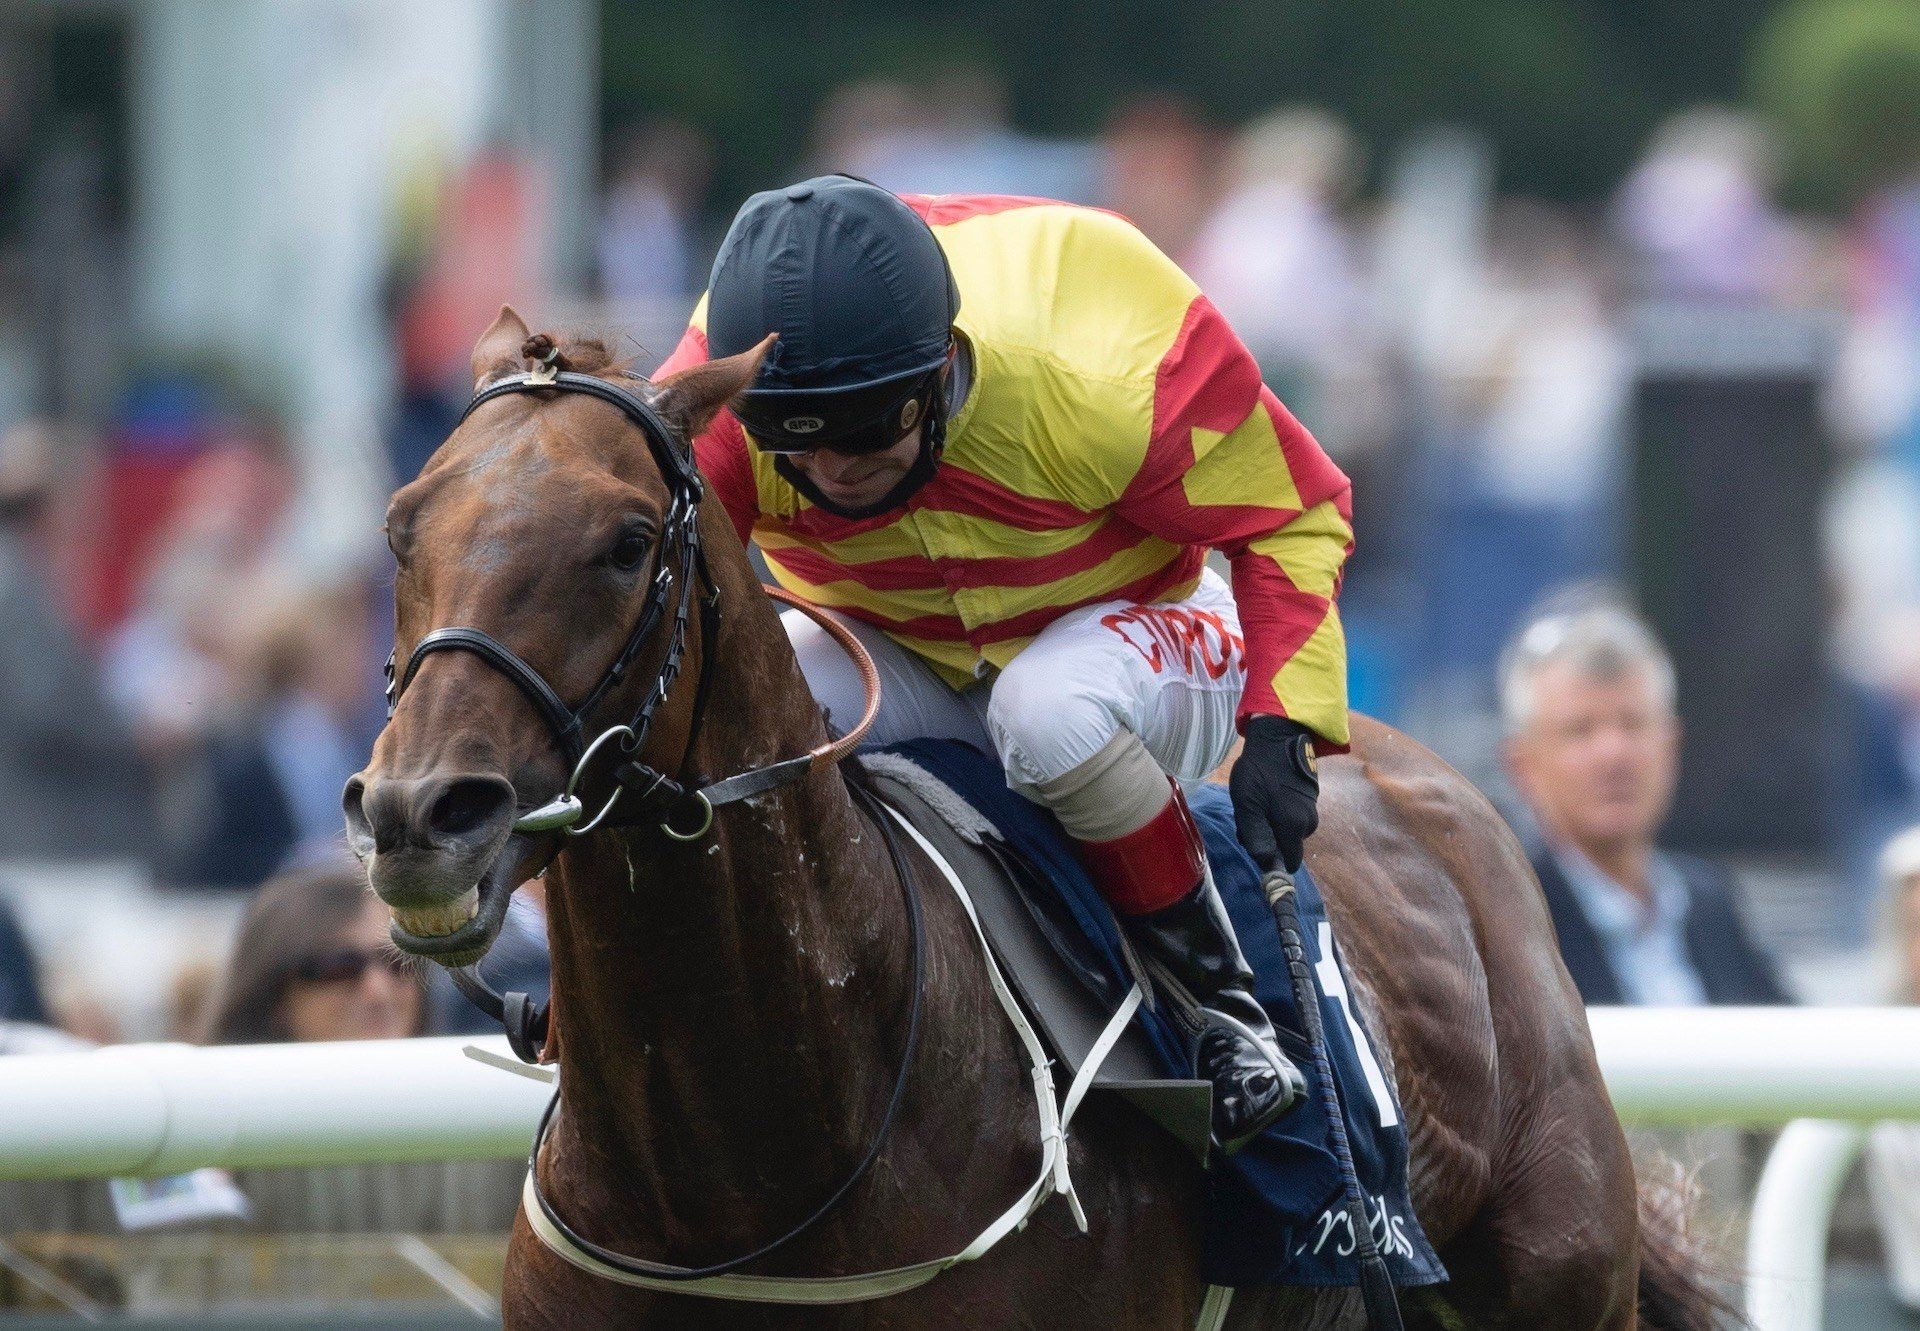 Sir Ron Priestley (Australia) Wins The Group 2 Princess Of Wales's Tattersalls Stakes at Newmarket